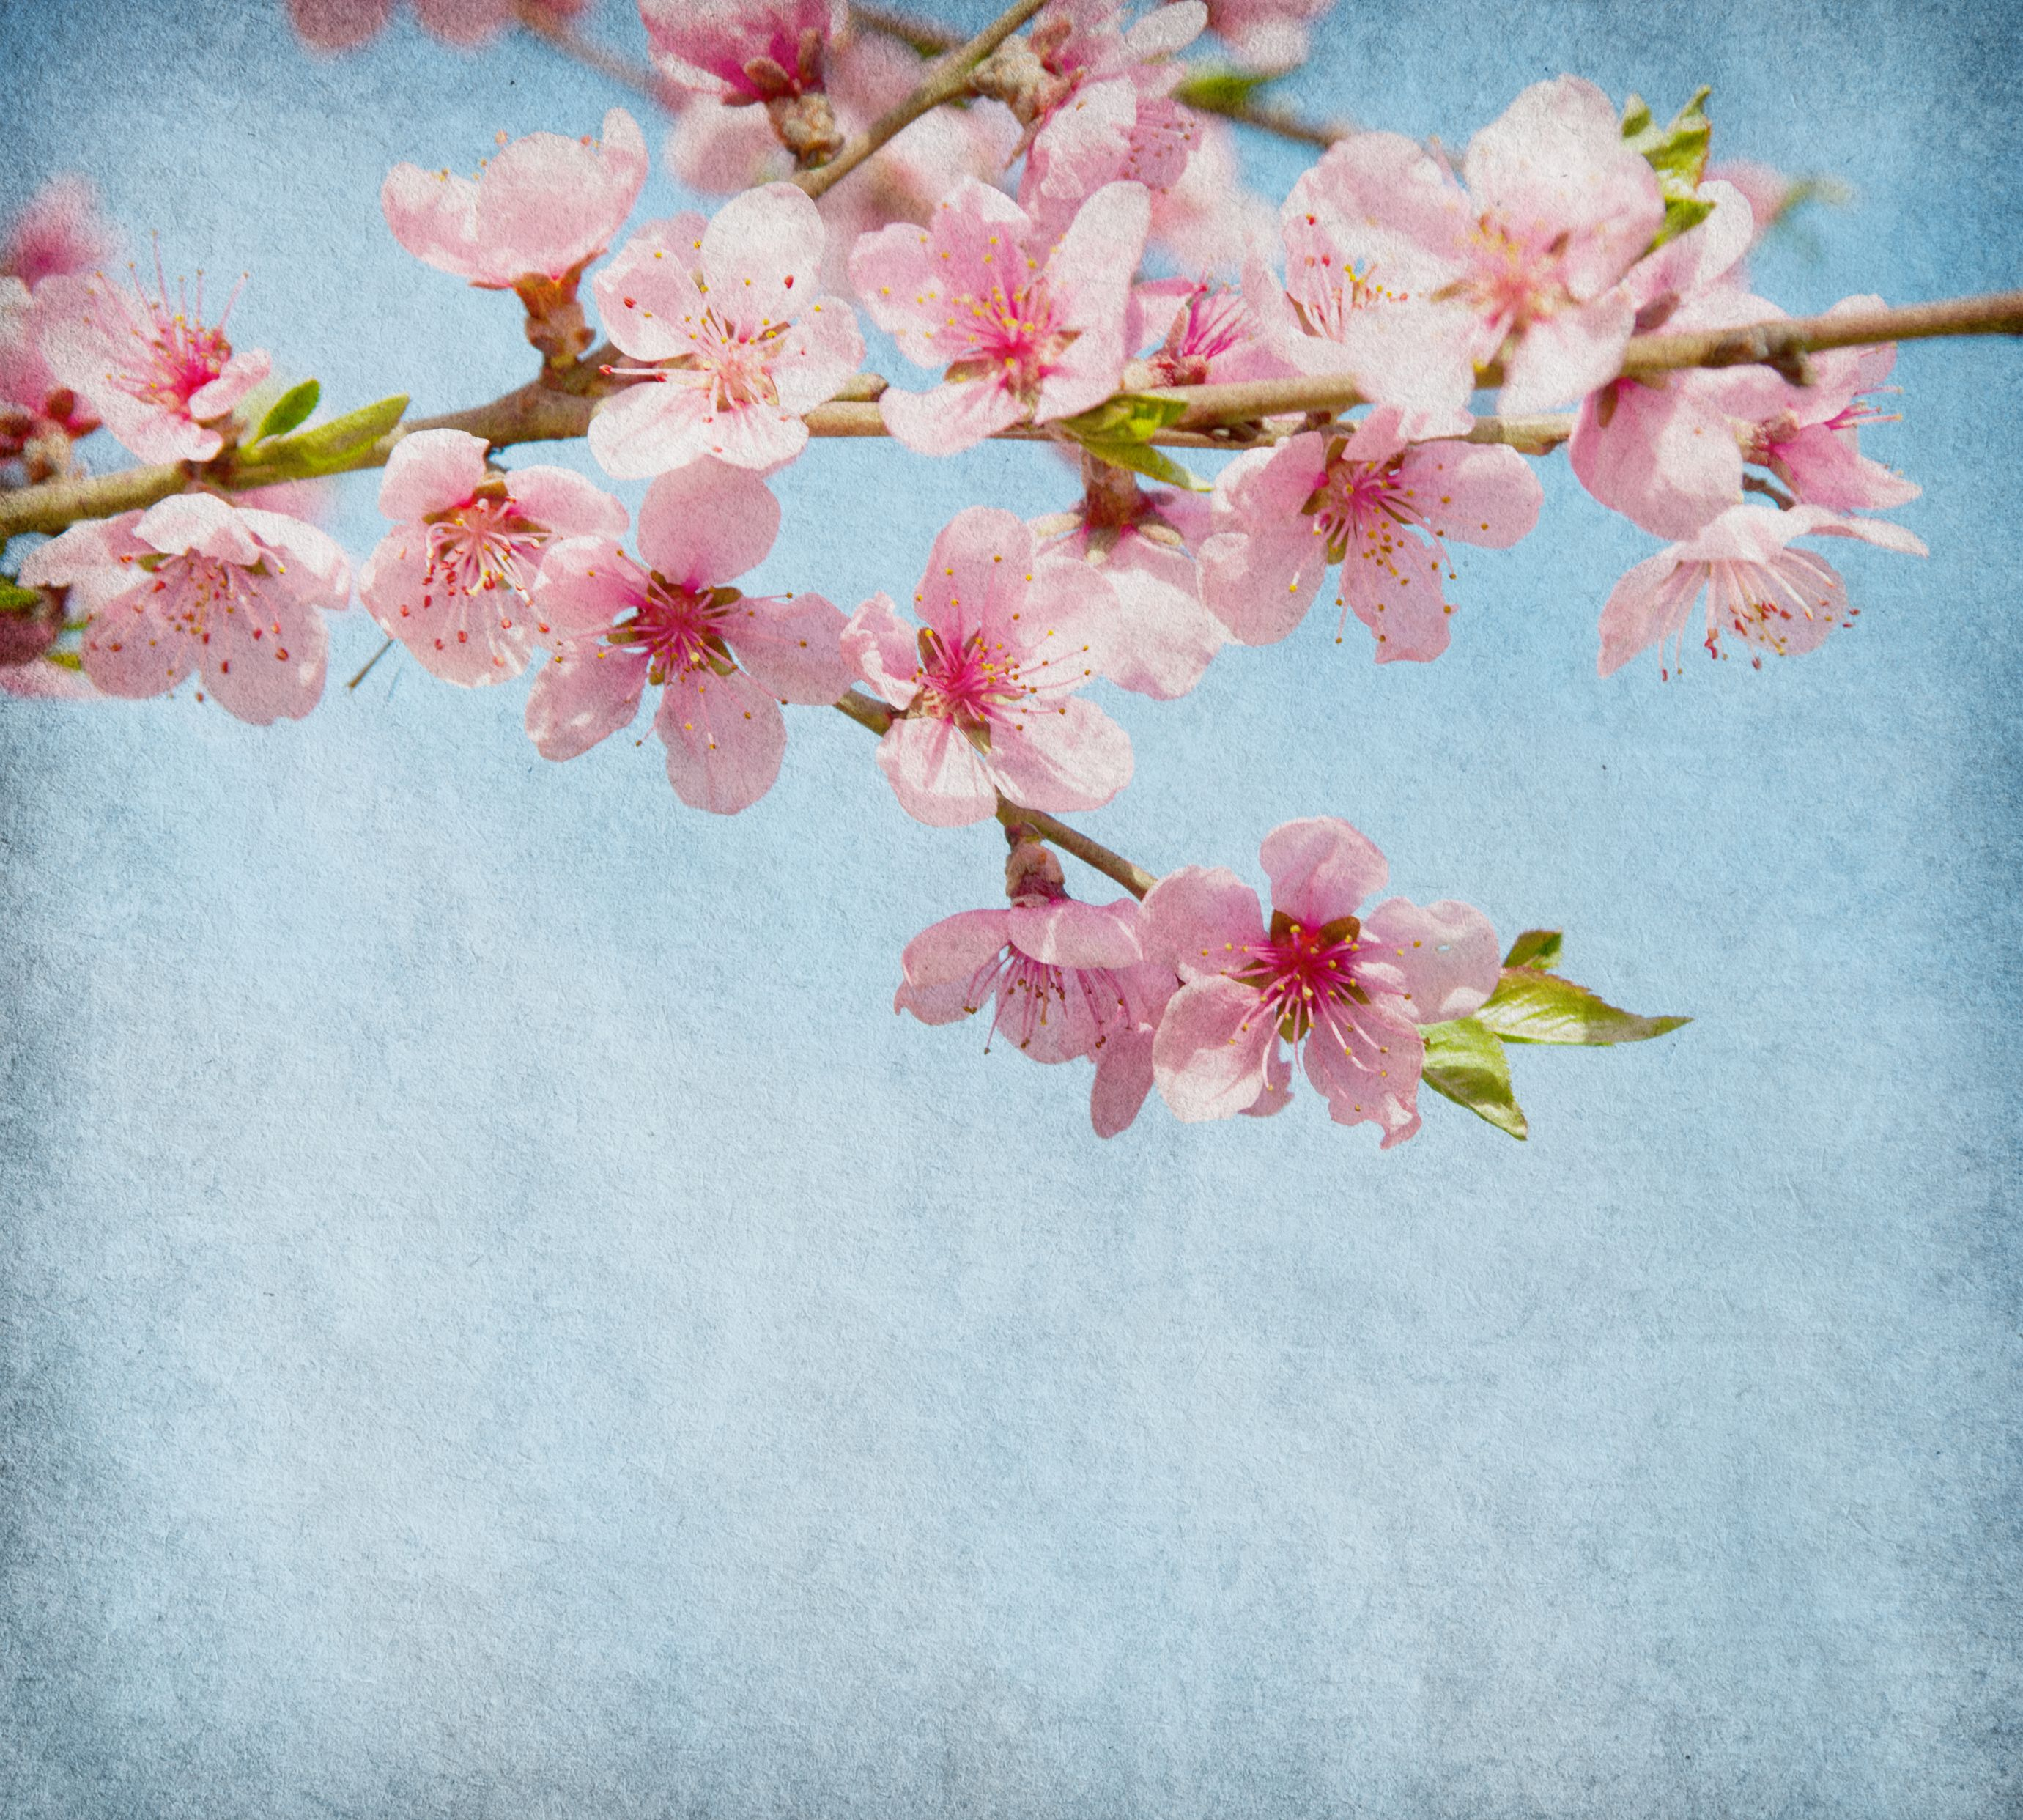 The Blossom Is A Symbol Of Love And Joy It Is Believed That This Delicate Little Flower Promotes Love And Spiritual Cherry Blossom Images Blossom Love Symbols